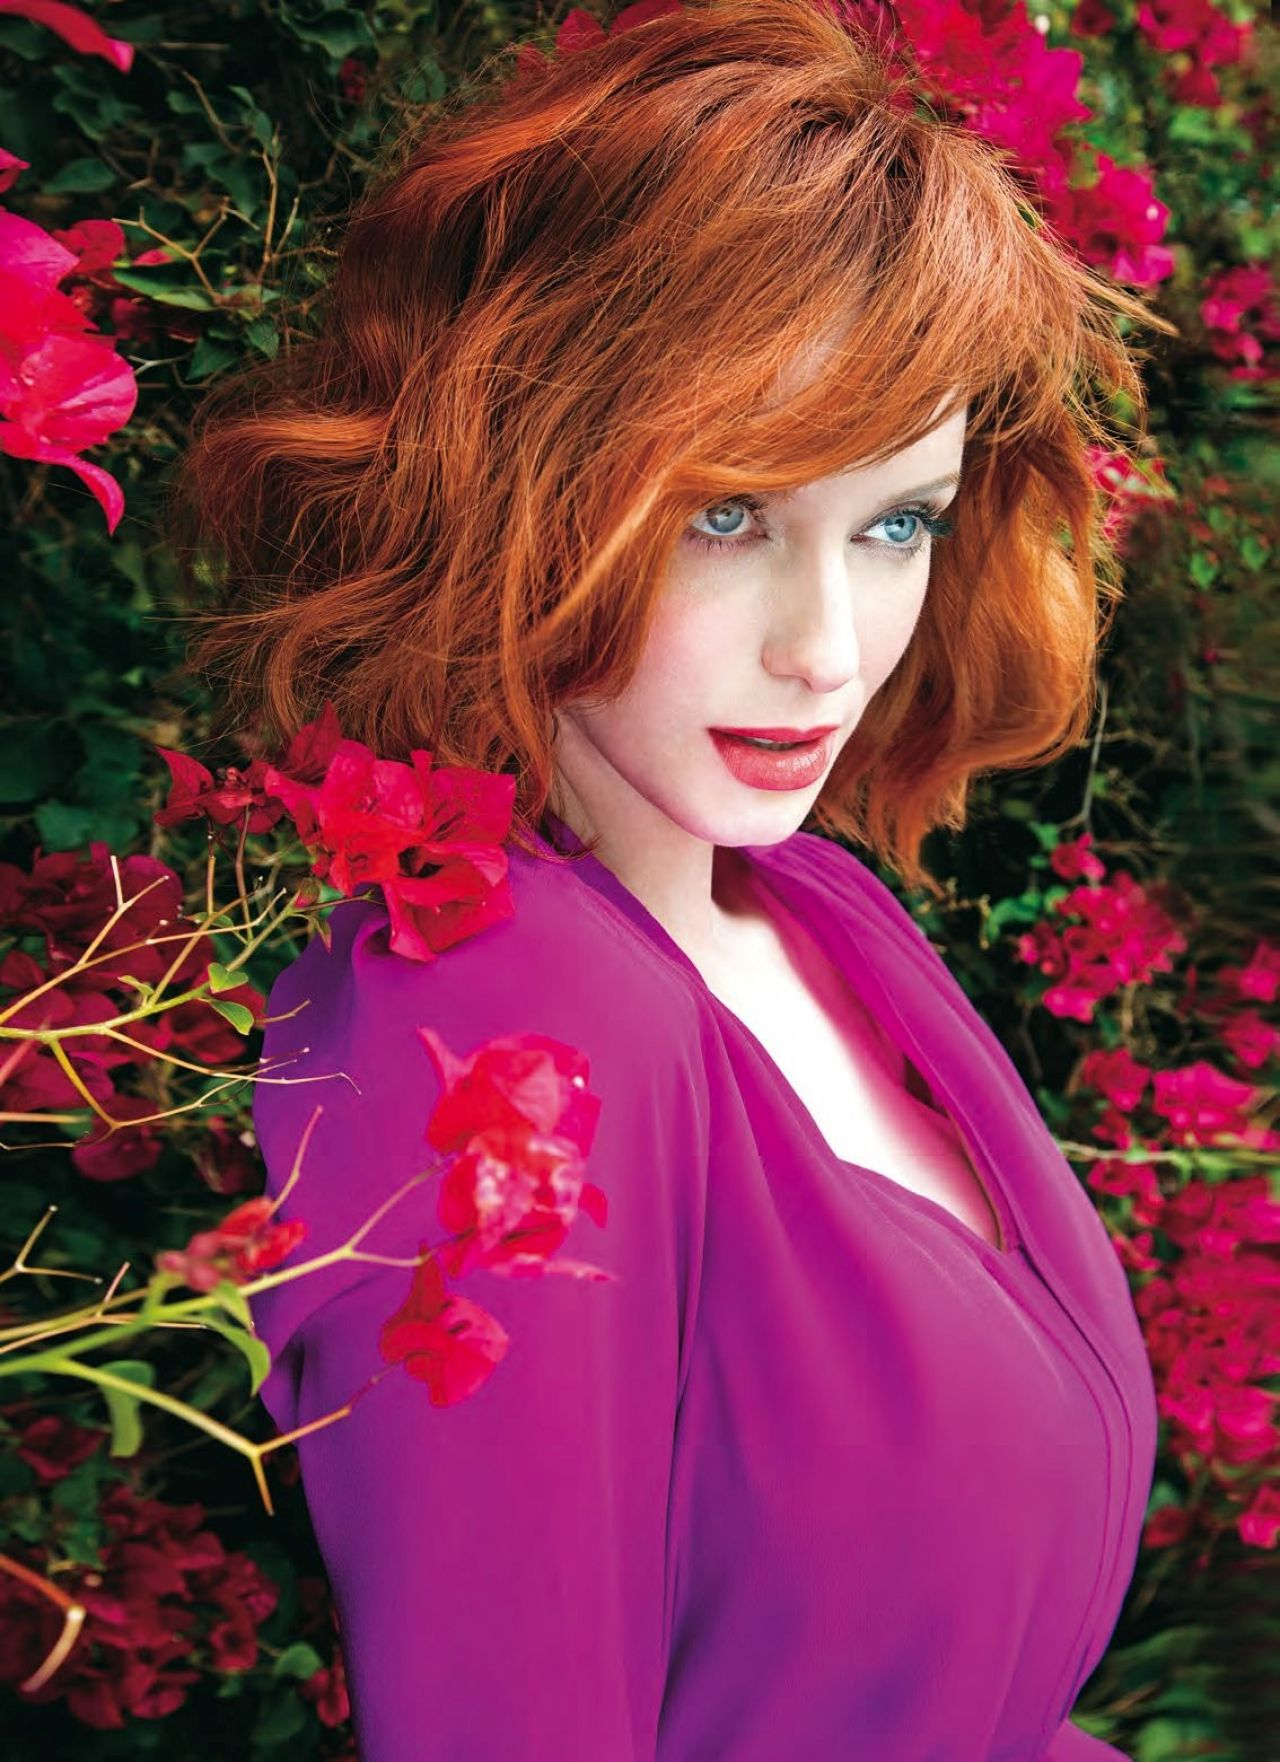 christina-hendricks-rhapsody-magazine-_red hair